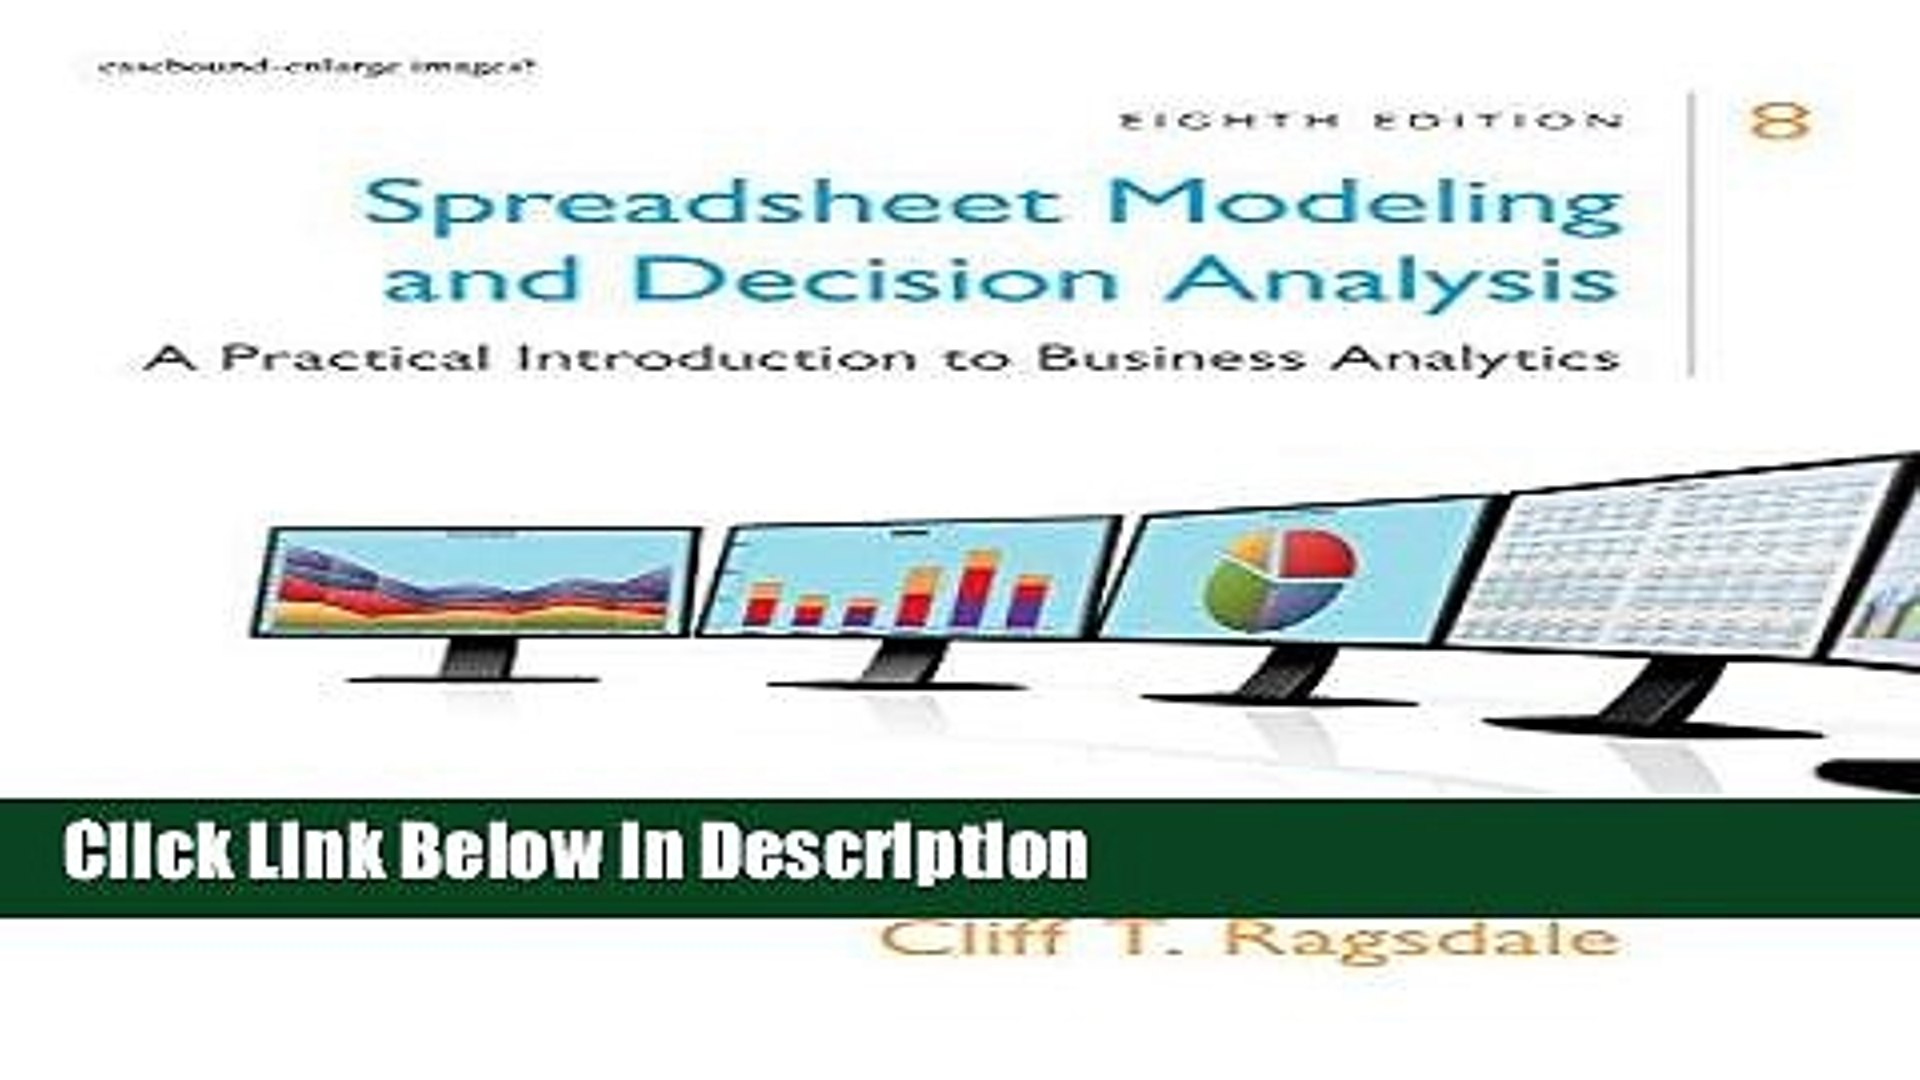 Spreadsheet Modeling & Decision Analysis 8Th Edition Regarding Download] Spreadsheet Modeling Decision Analysis: A Practical